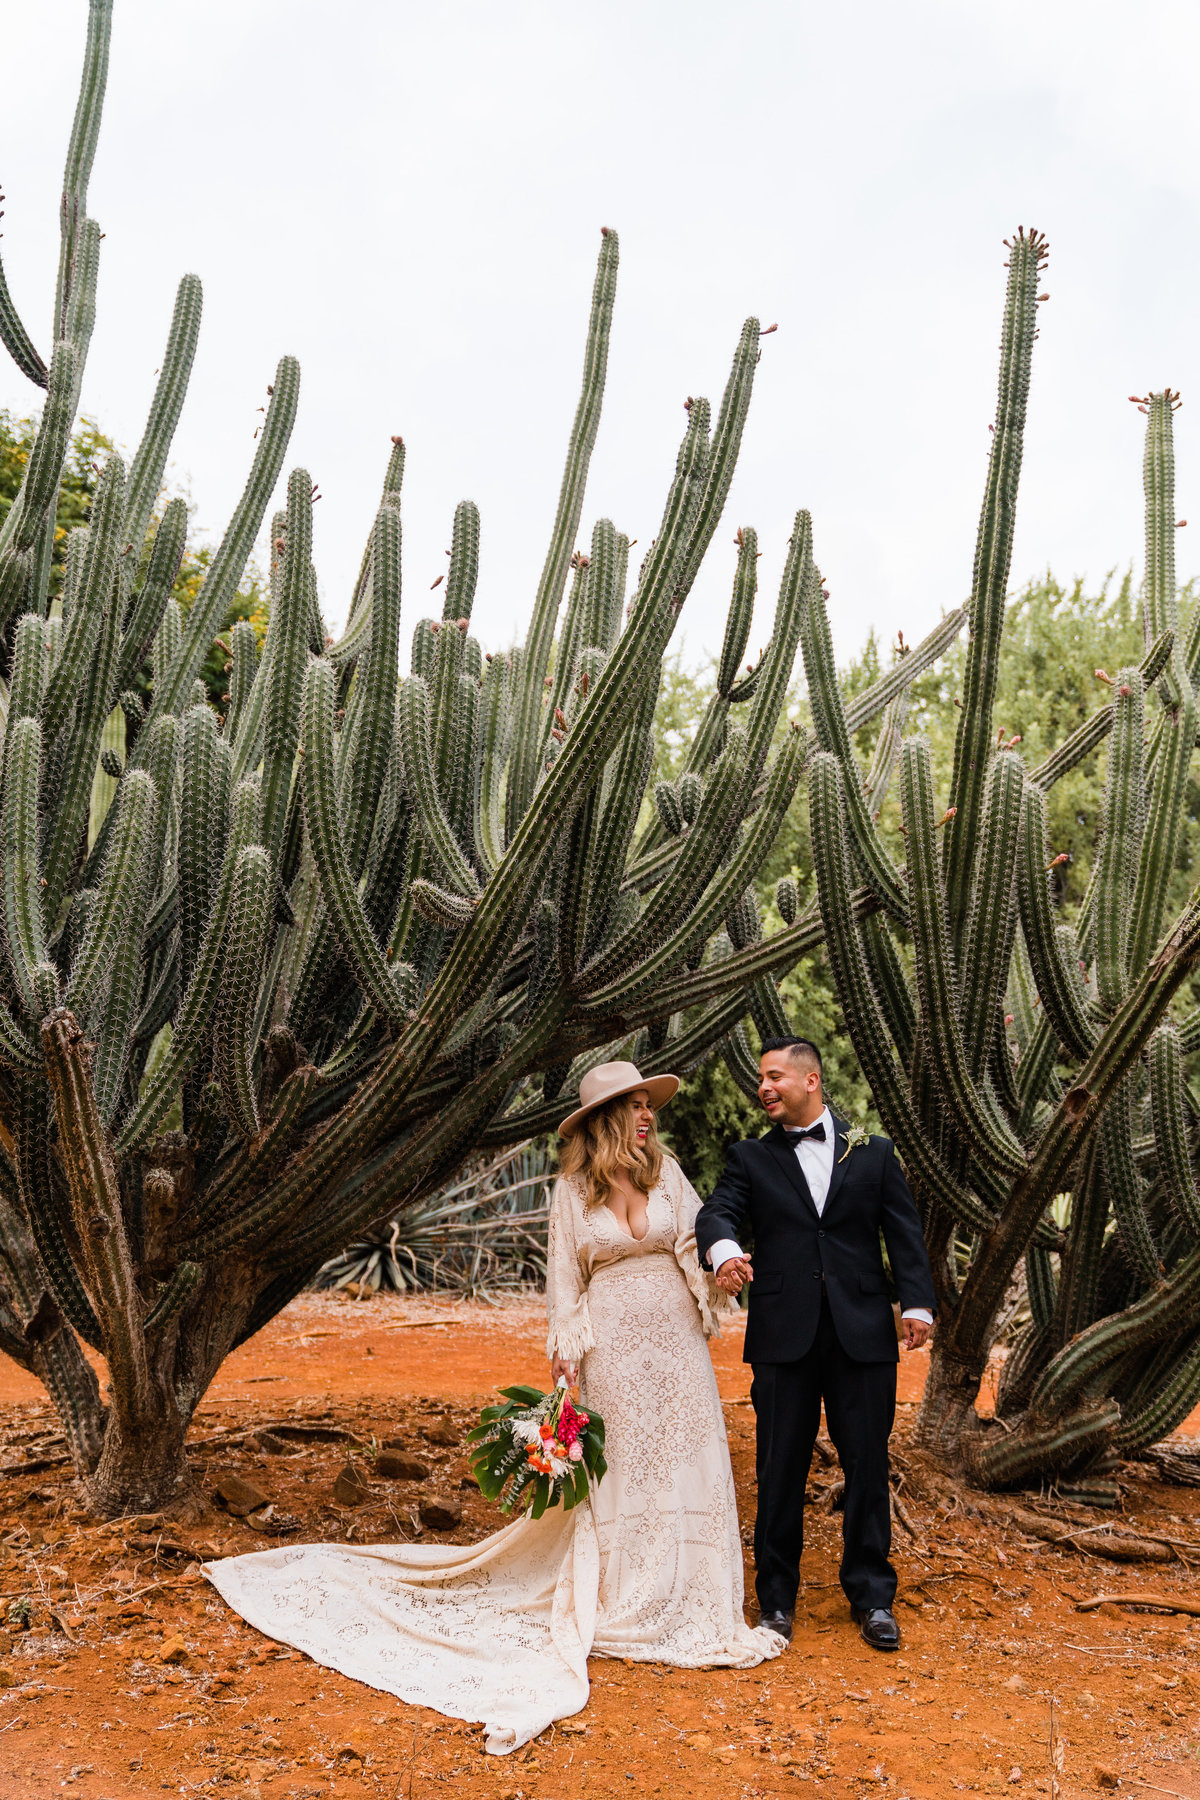 cactus-botanical-garden-hawaii-elopement-sydney-and-ryan-photography-51